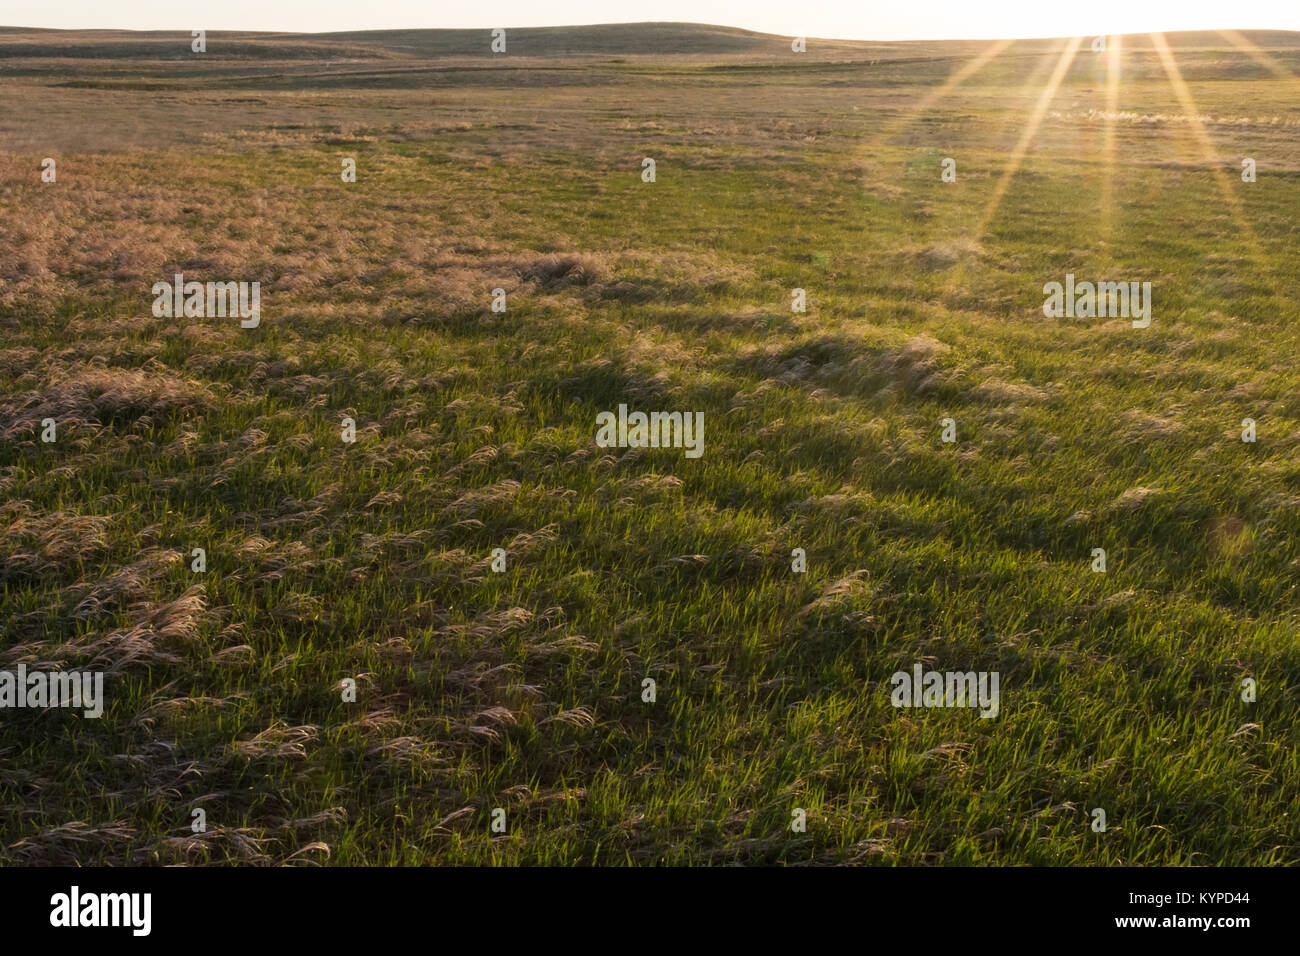 Golden grass is bend over by the wind on the flat pairie. - Stock Image